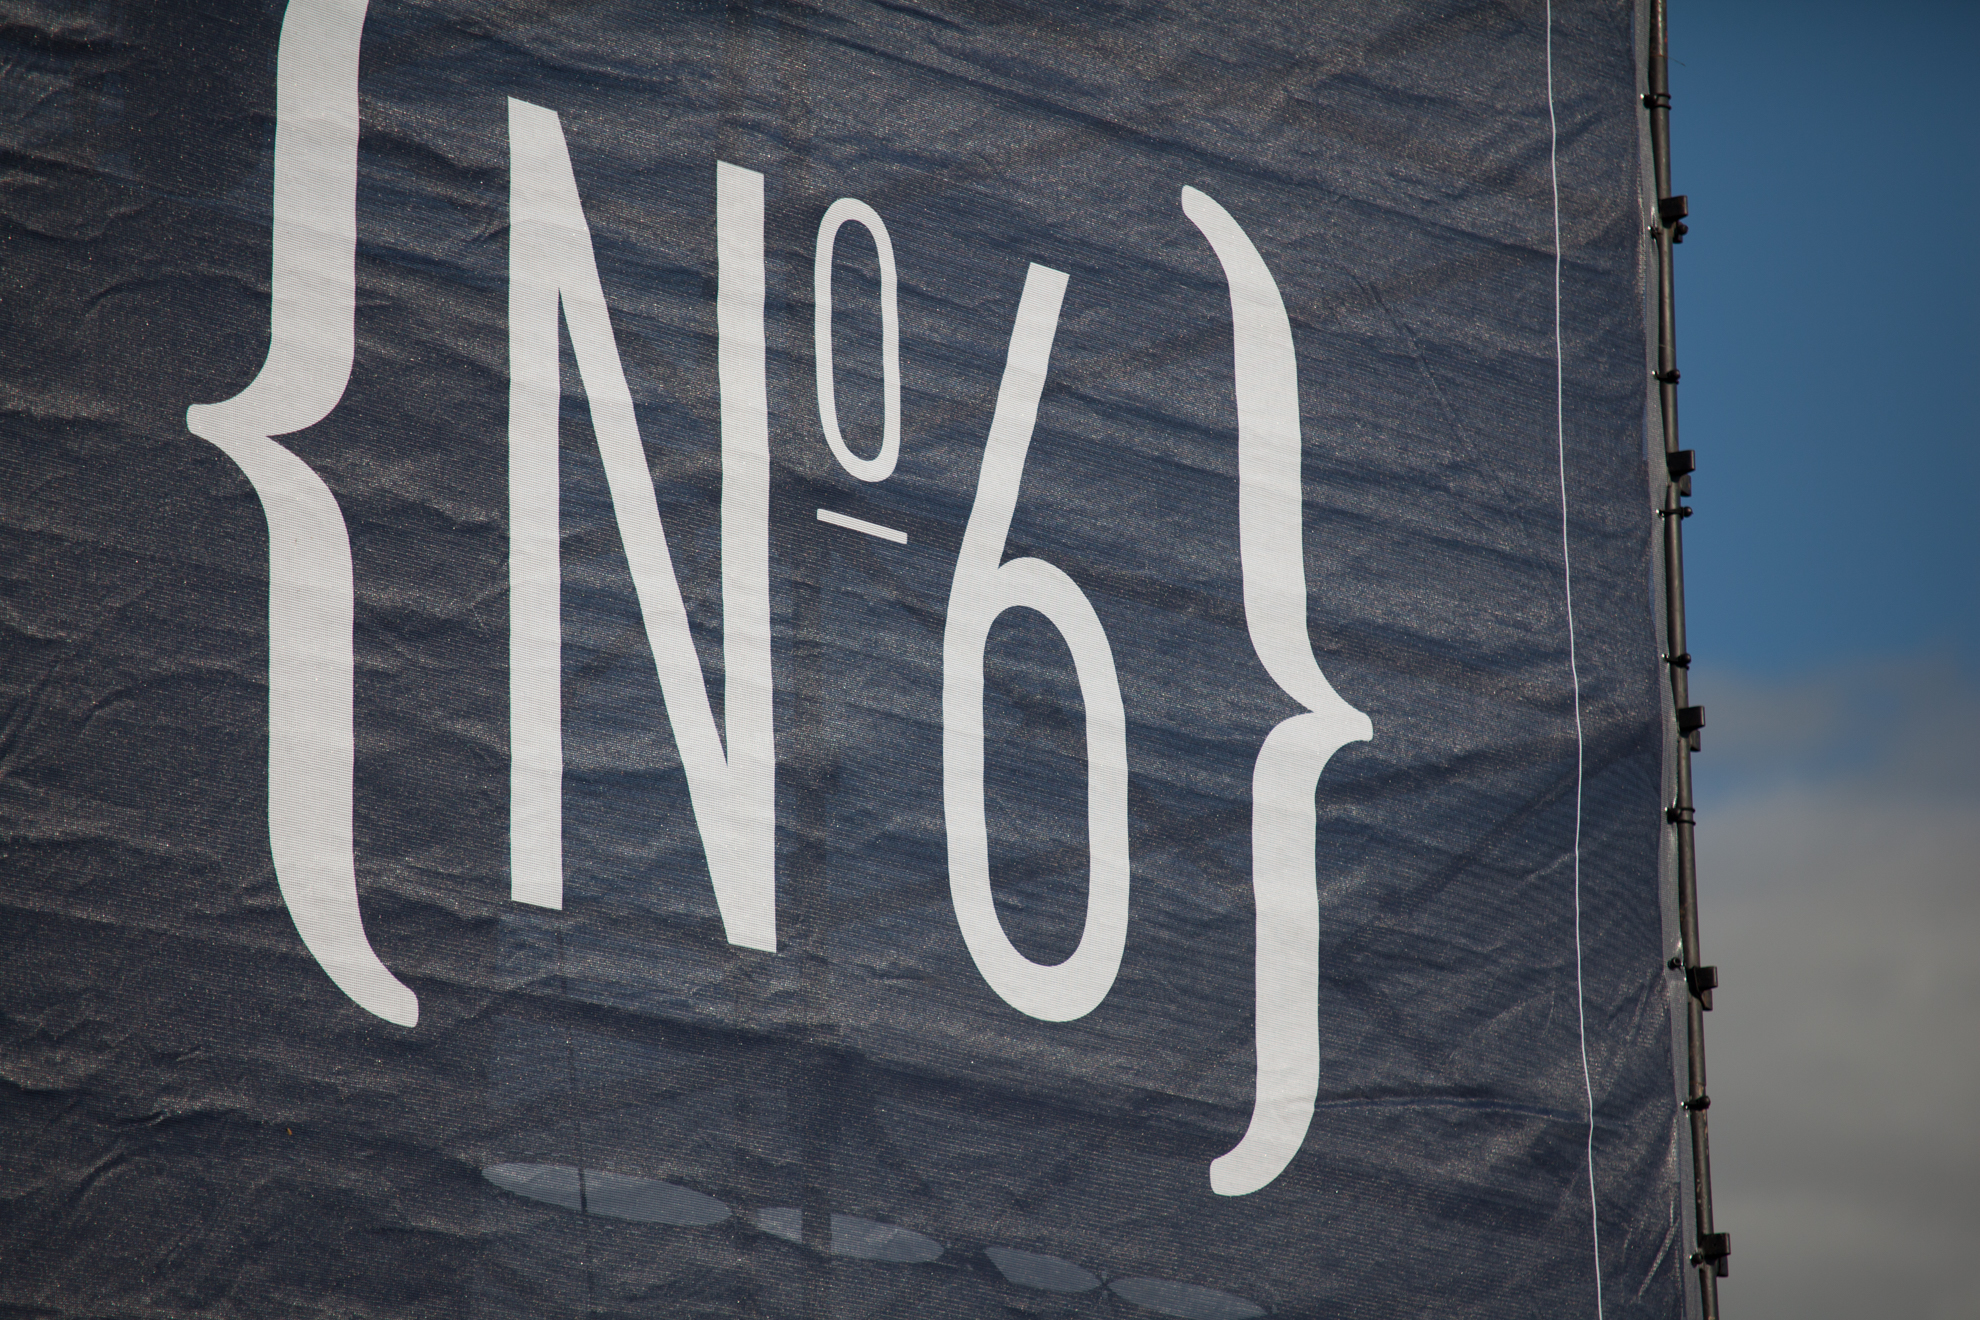 REVIEW: Festival No.6 2015